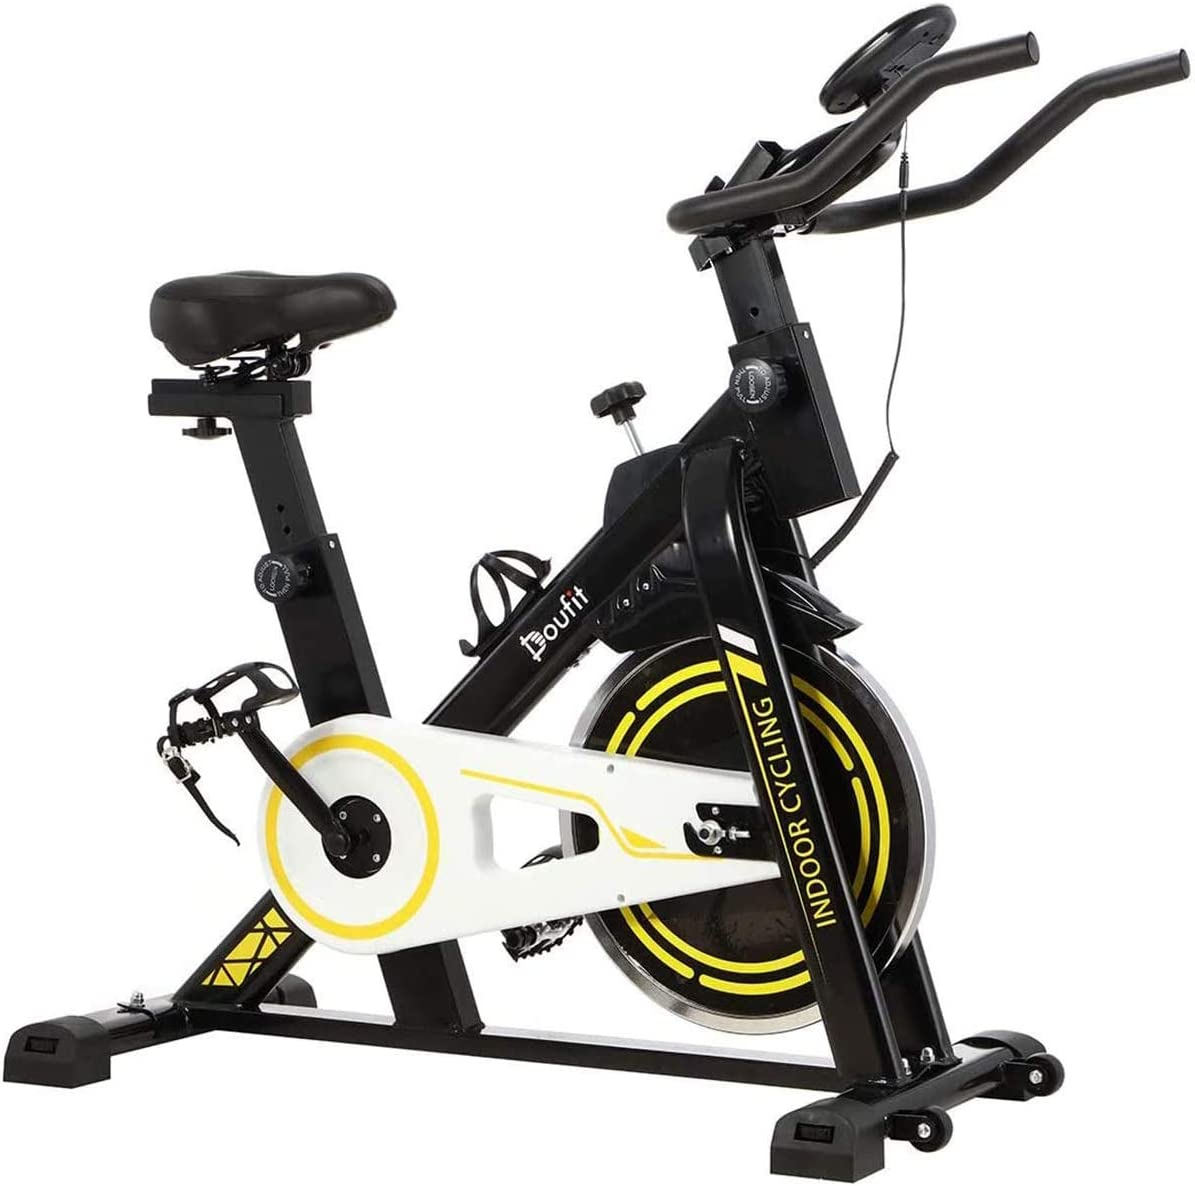 Doufit Indoor Cycling Bike Stationary, Exercise Bike for Home Use, Adjustable Belt Driven Spinning Workout Bicycle with Bottle Holder and LCD Monitor